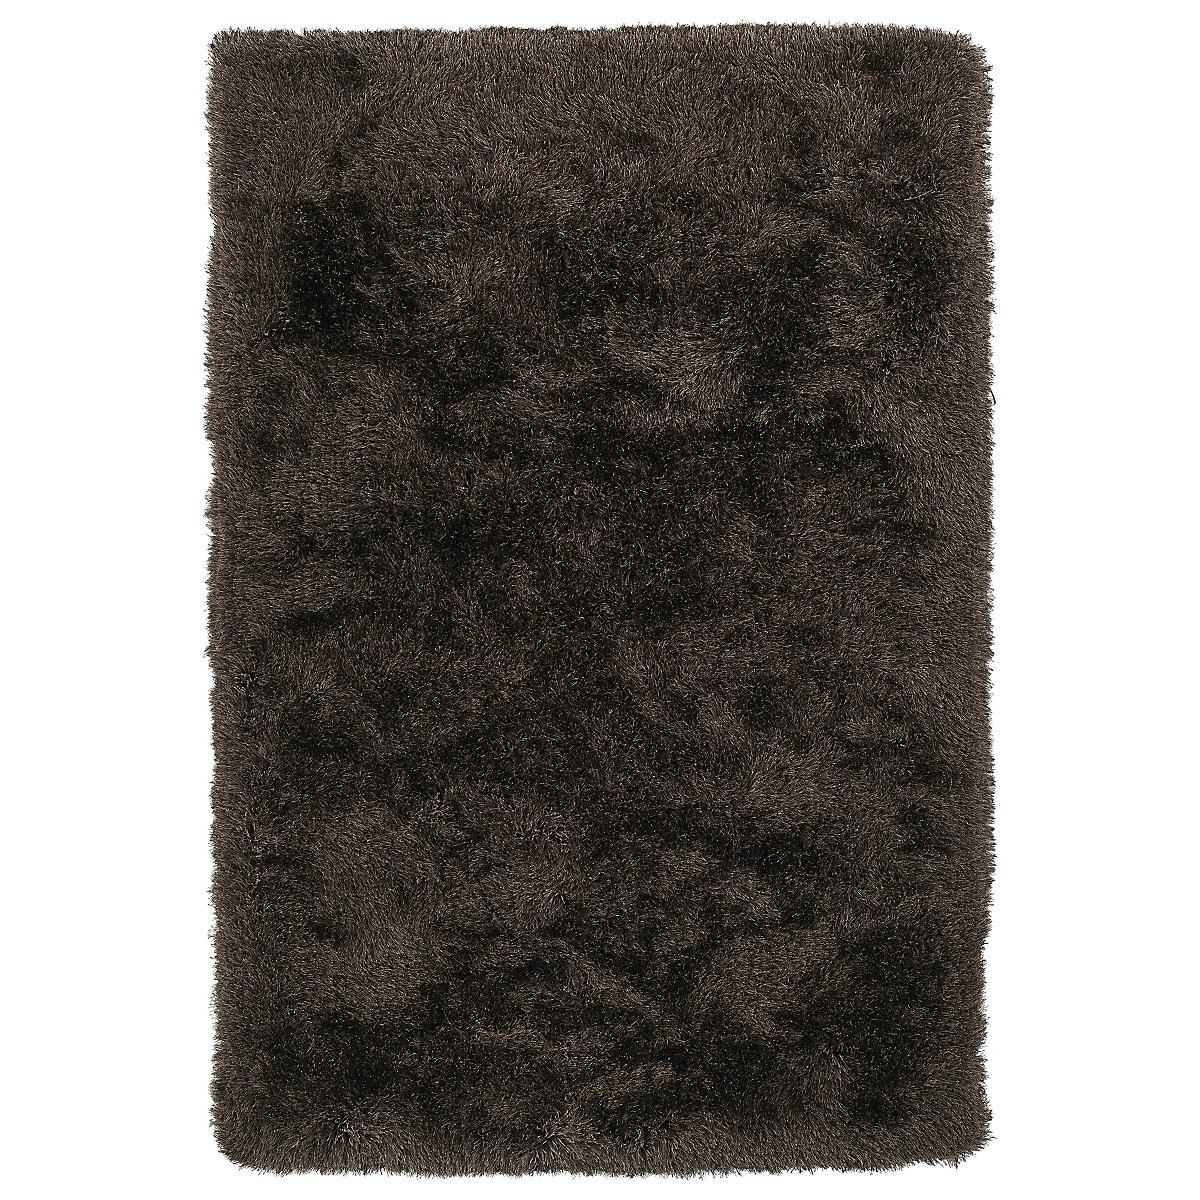 Impact Dark Brown 8X10 Area Rug